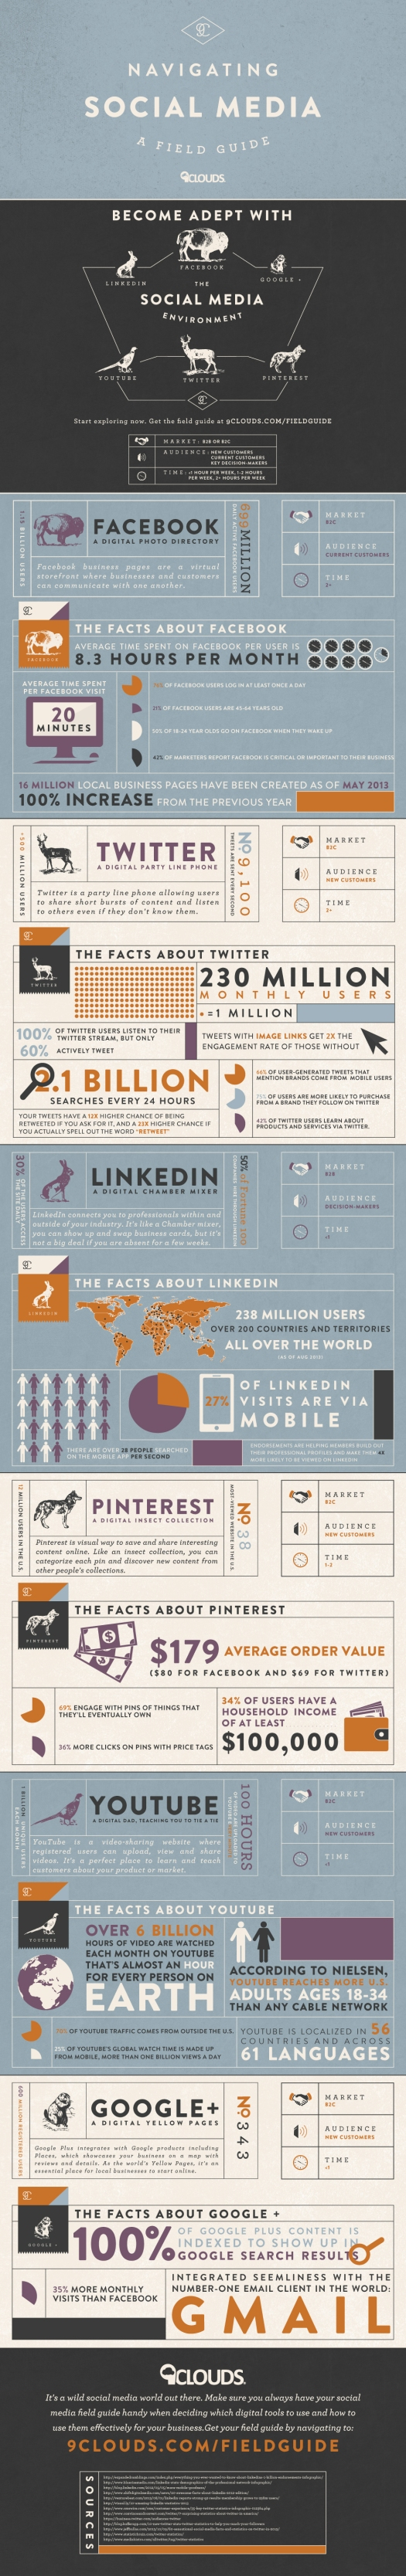 Navigating Social Media Infographic | 9 Clouds